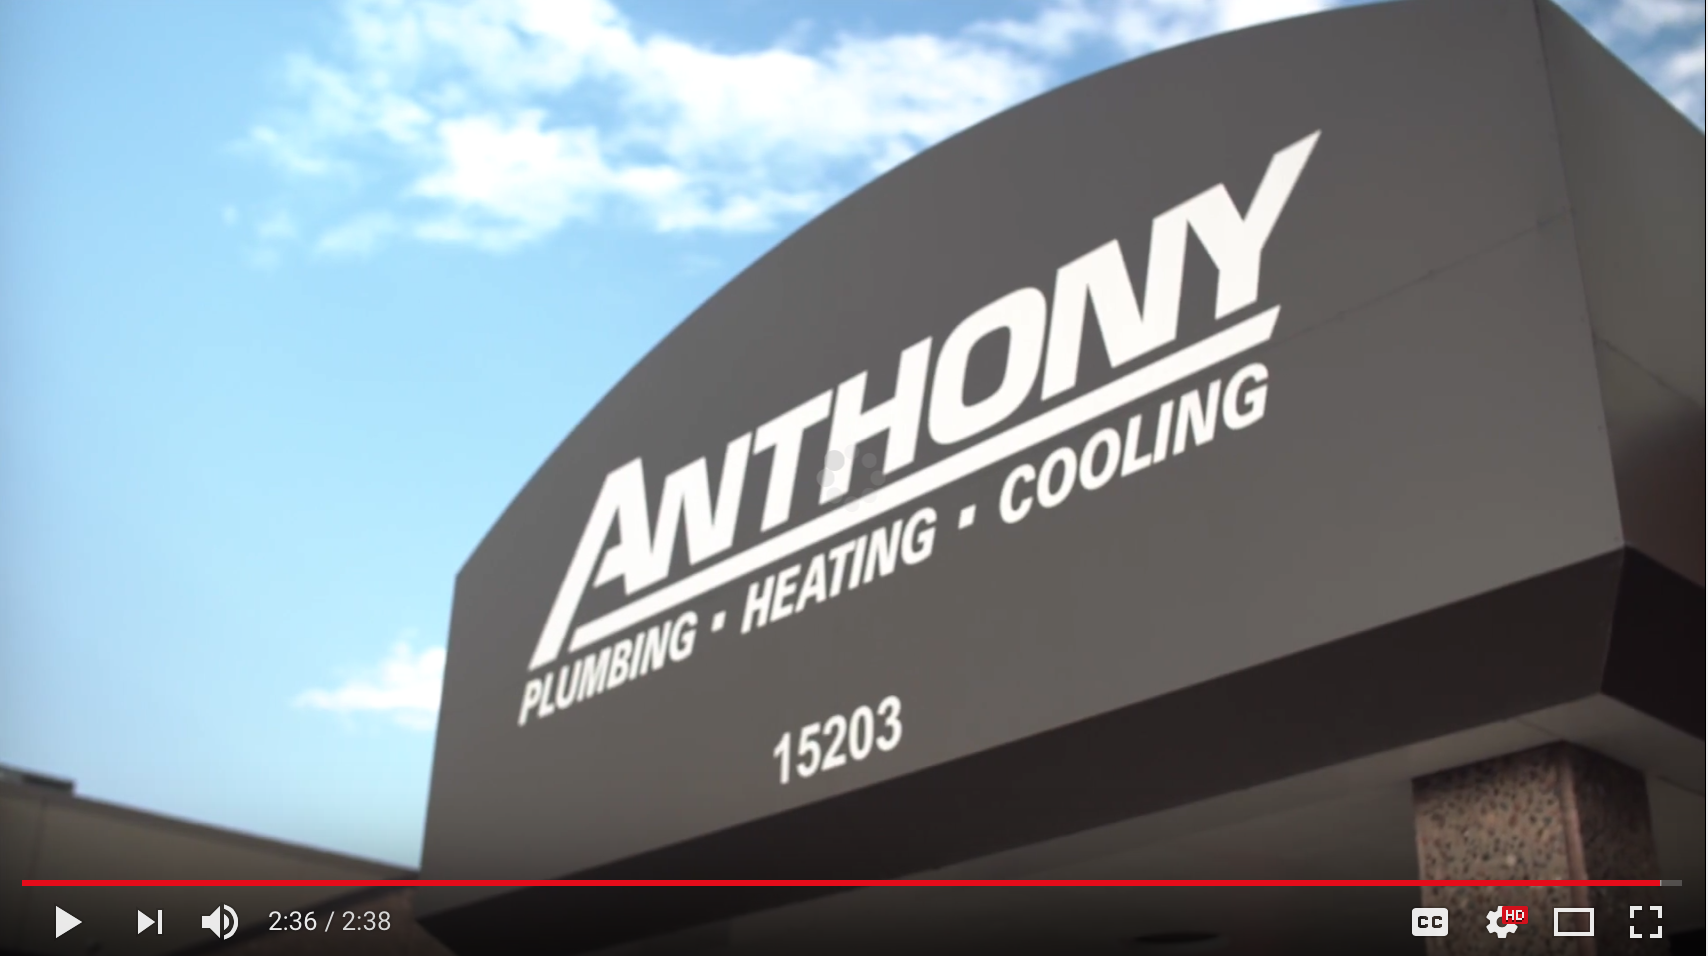 Anthony Plumbing Heating Amp Cooling Lenexa Kansas Ks